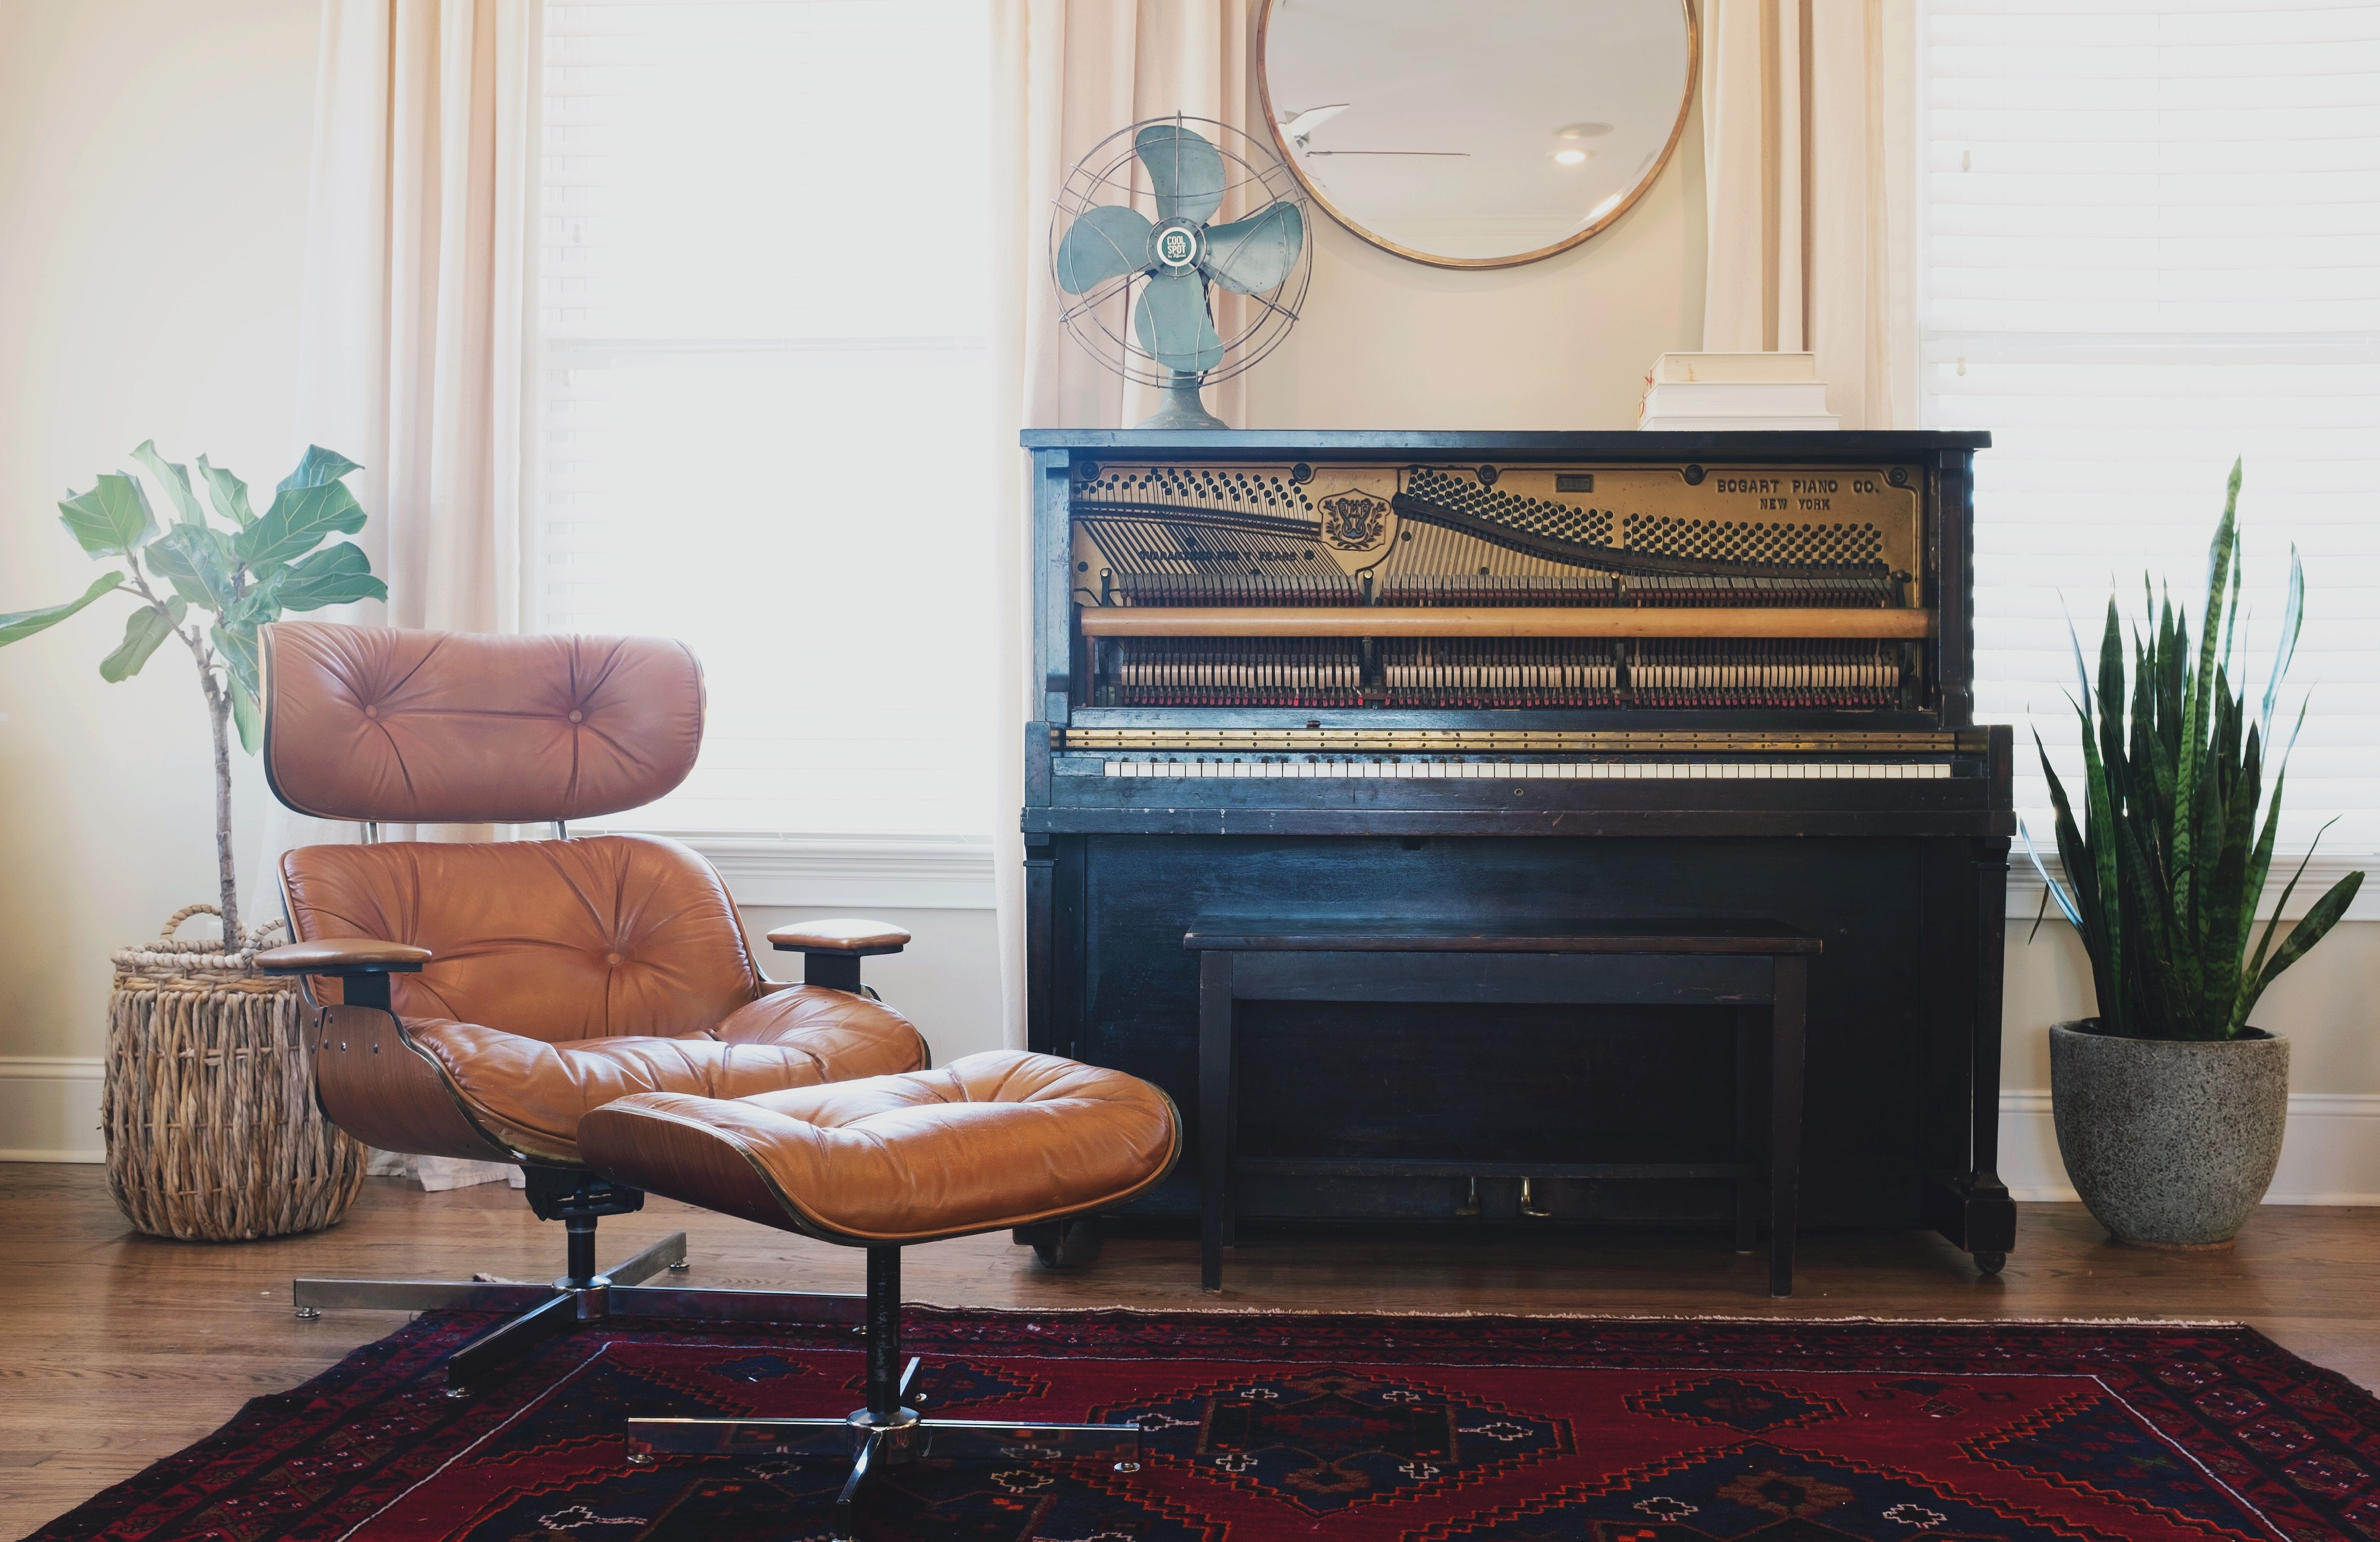 A leather chair with a footstool next to a piano with an exposed soundboard